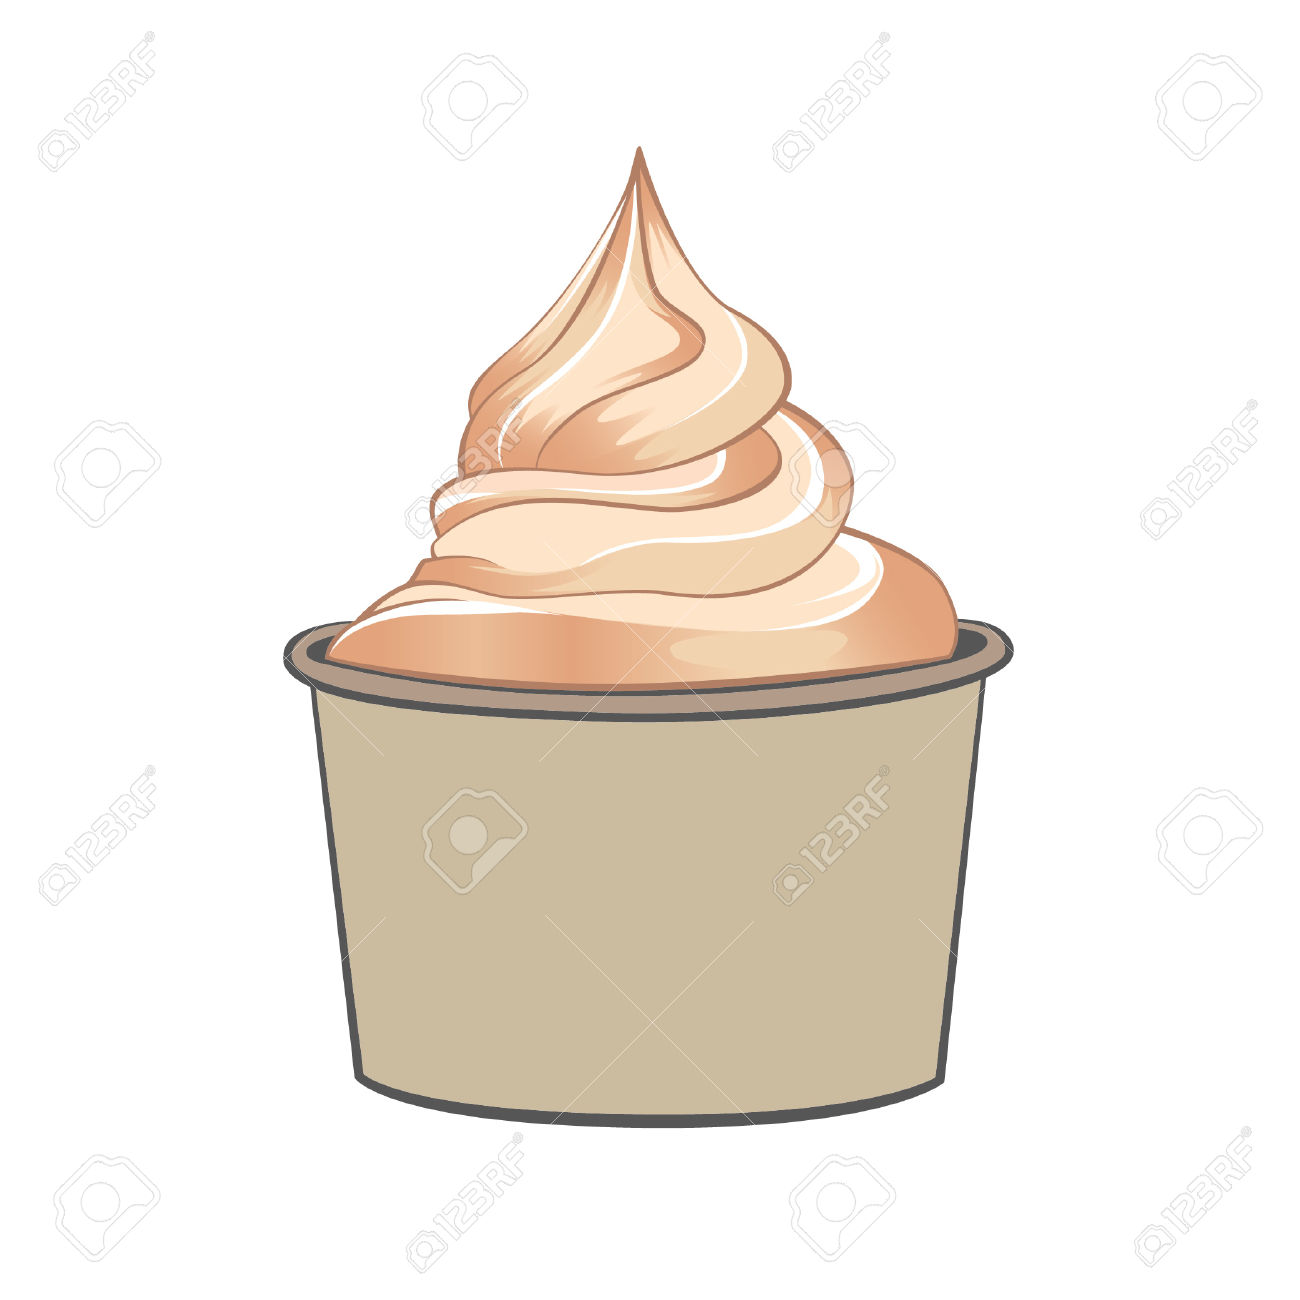 Clipart ice cream cup.